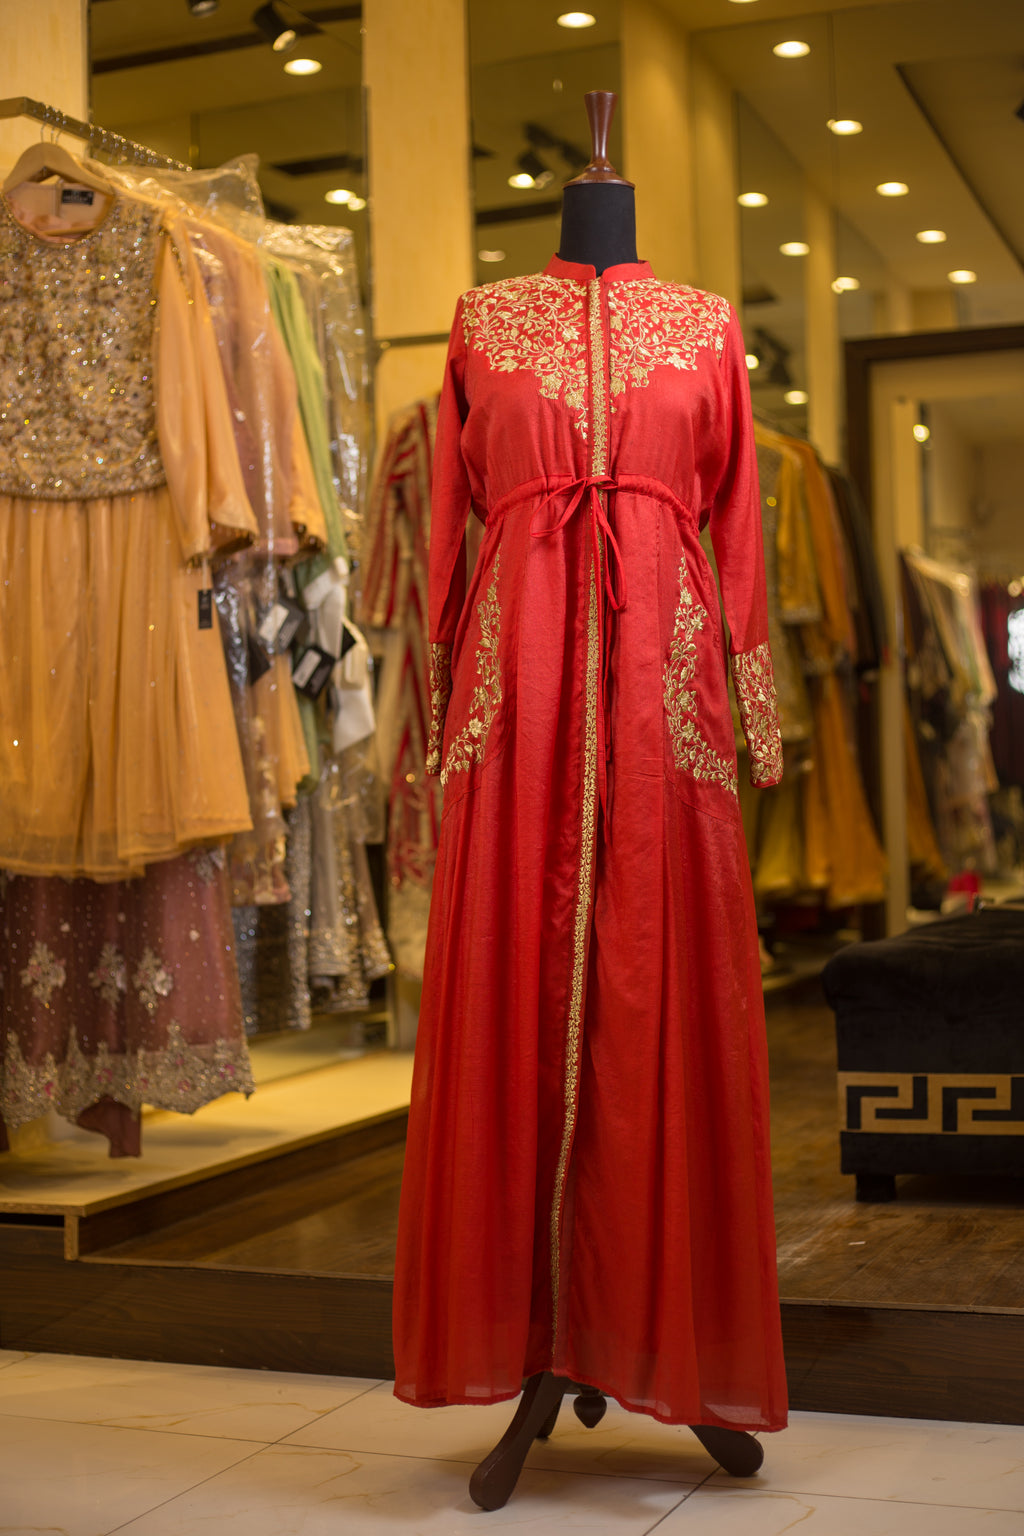 Red button-down Maxi with metallic gold embroidery